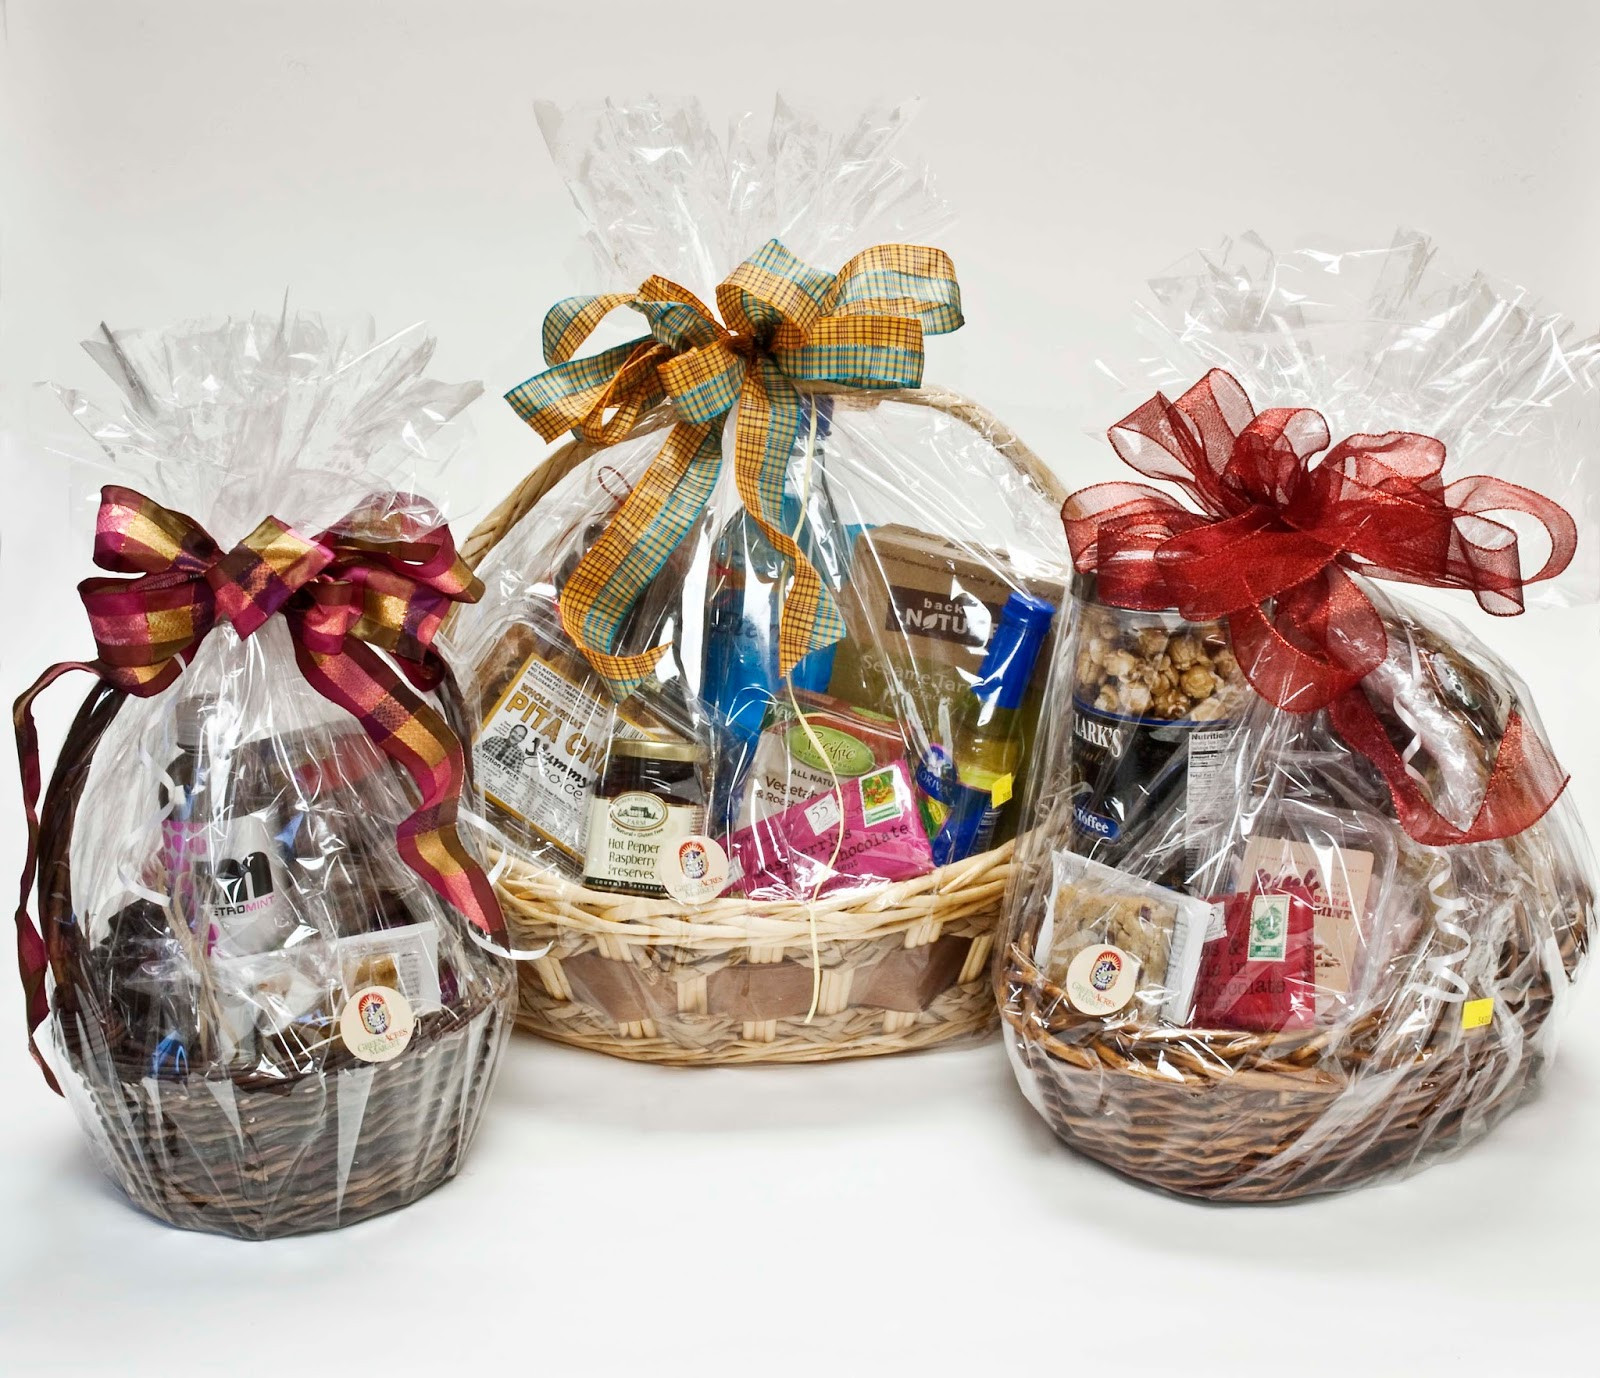 Small Gift Basket Ideas  Gift Basket Business How to Start a Gift Basket Business